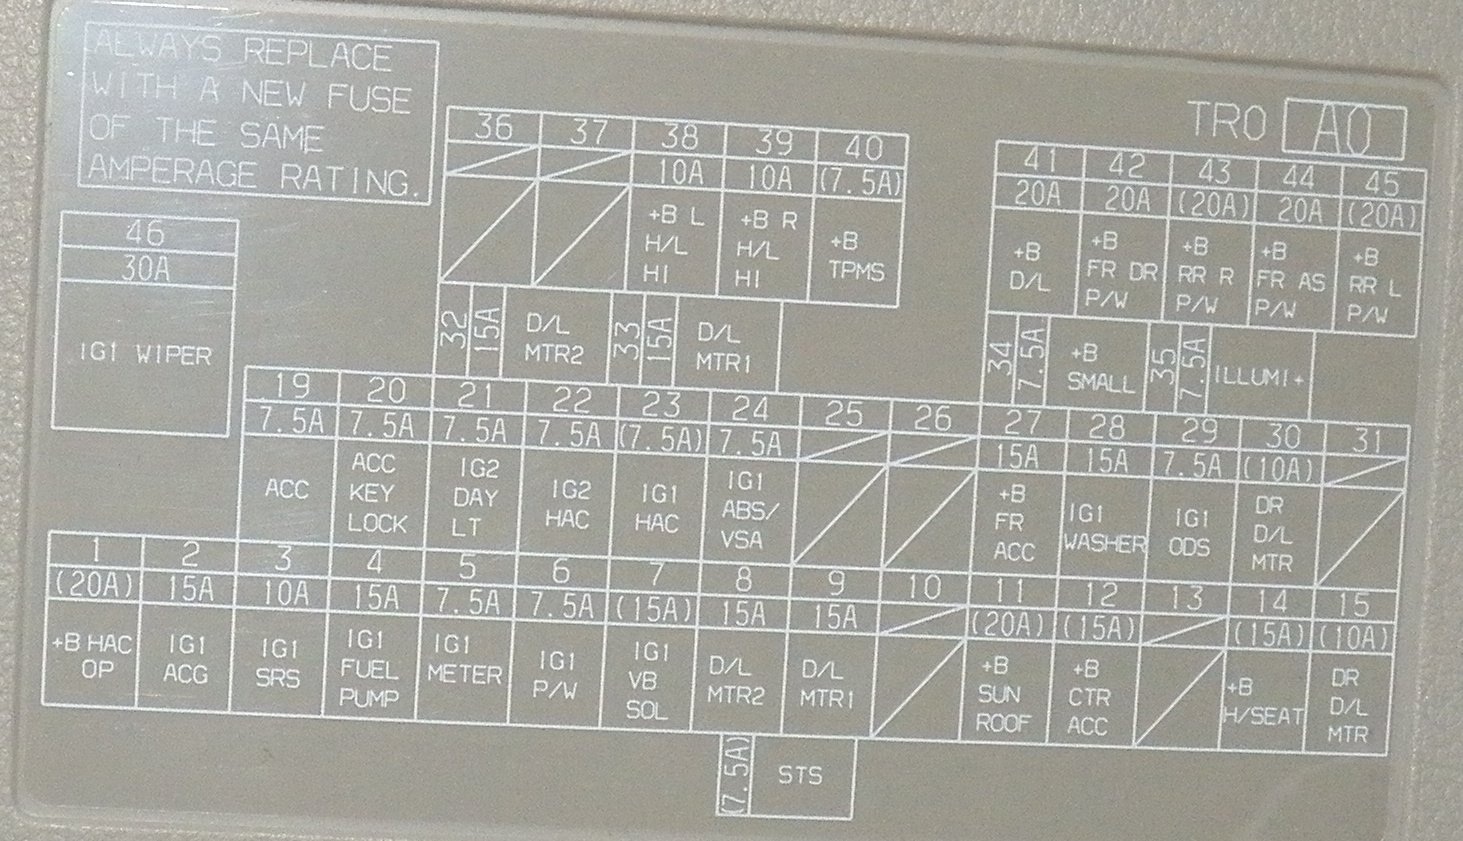 2012 Honda Civic Fuse Box Diagram Free Wiring For You Dash Pics Rh 9thgencivic Com 2010 Accord